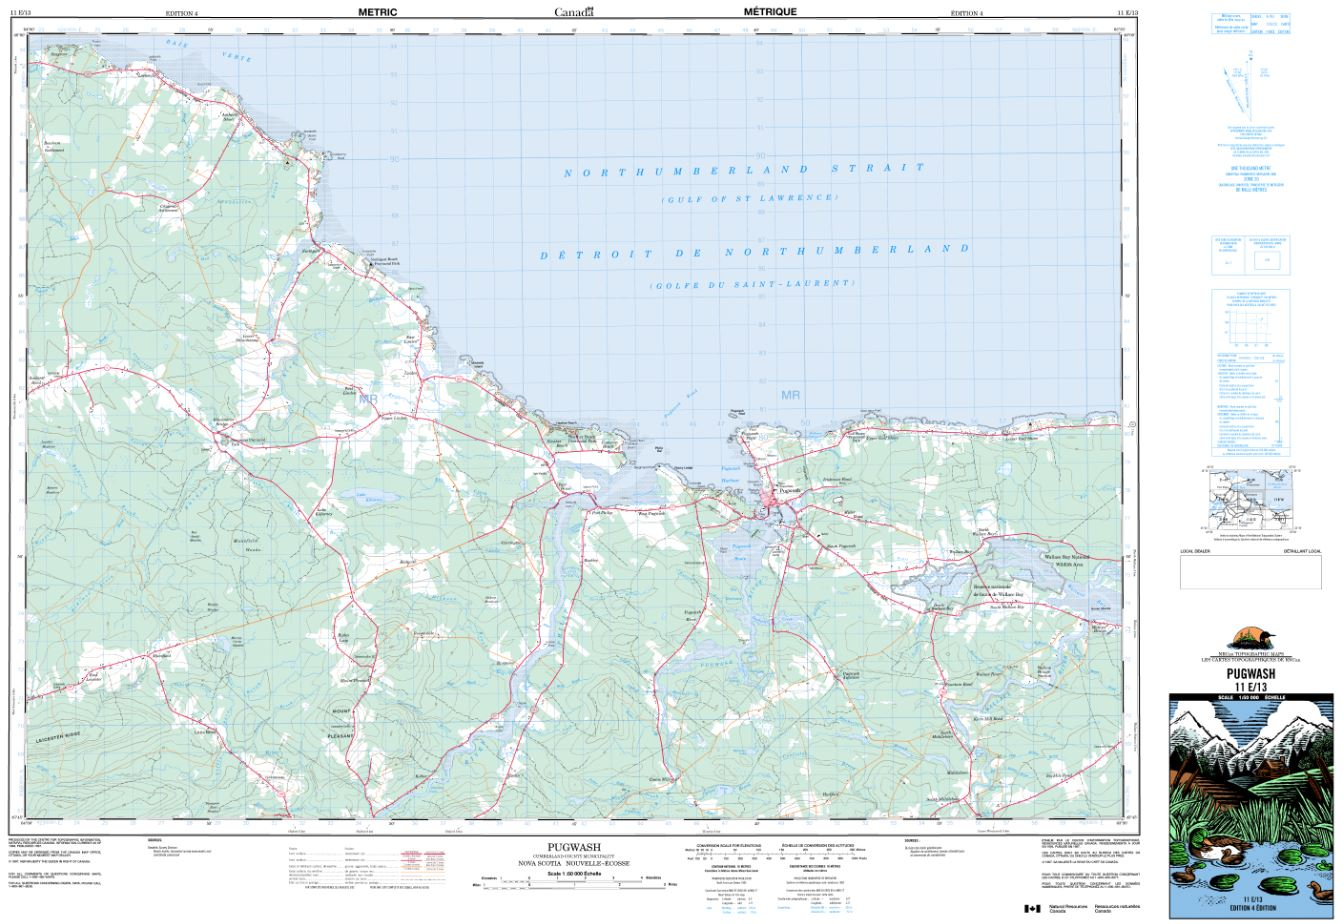 11E/13 Pugwash Topographic Map Nova Scotia Tyvek